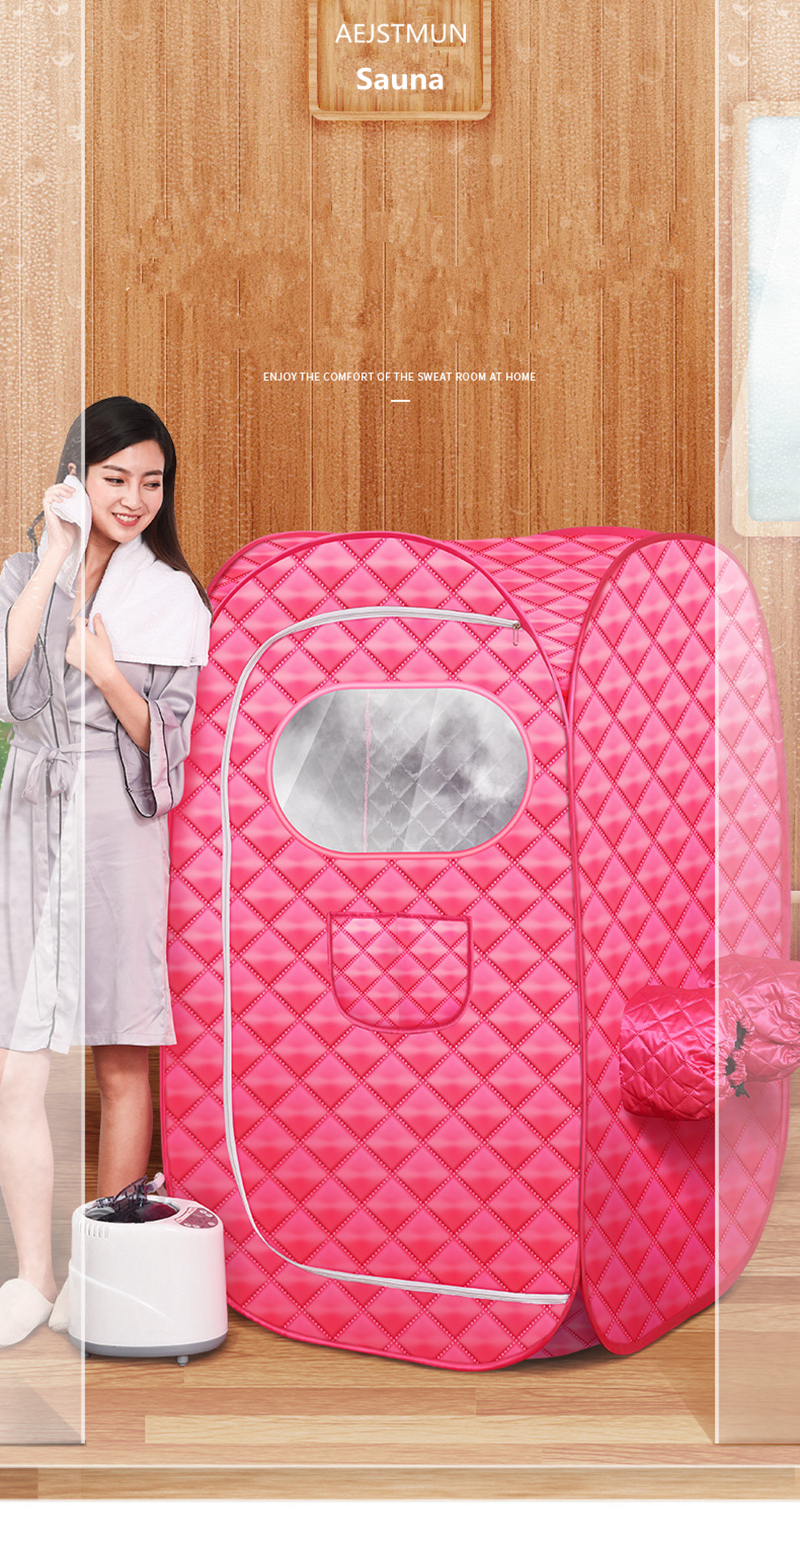 Portable Steam Sauna Bath for Health and Beauty Spa at Home Lose Weight Detox Therapy Steam Fold Sauna Cabin 13